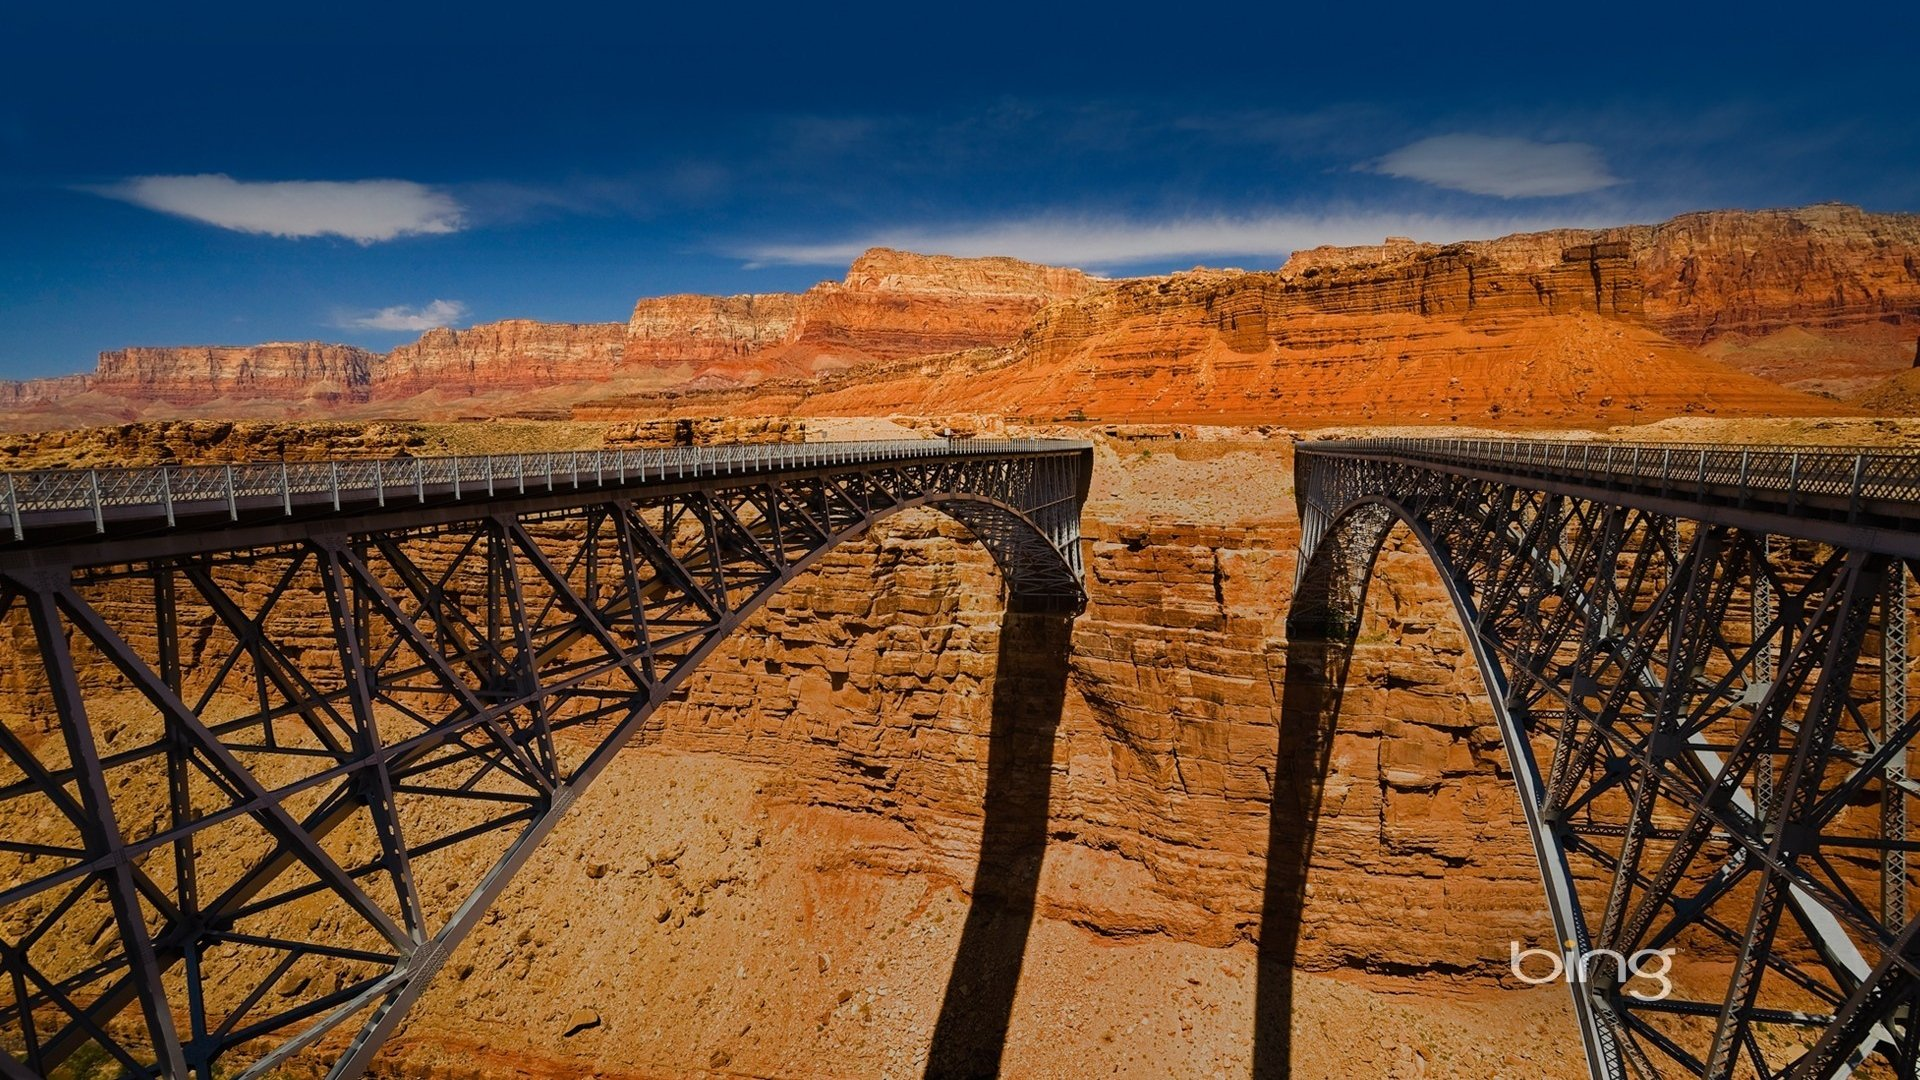 Wallpaper 1920x1080 bridges canyon height engineering Full HD 1080p 1920x1080